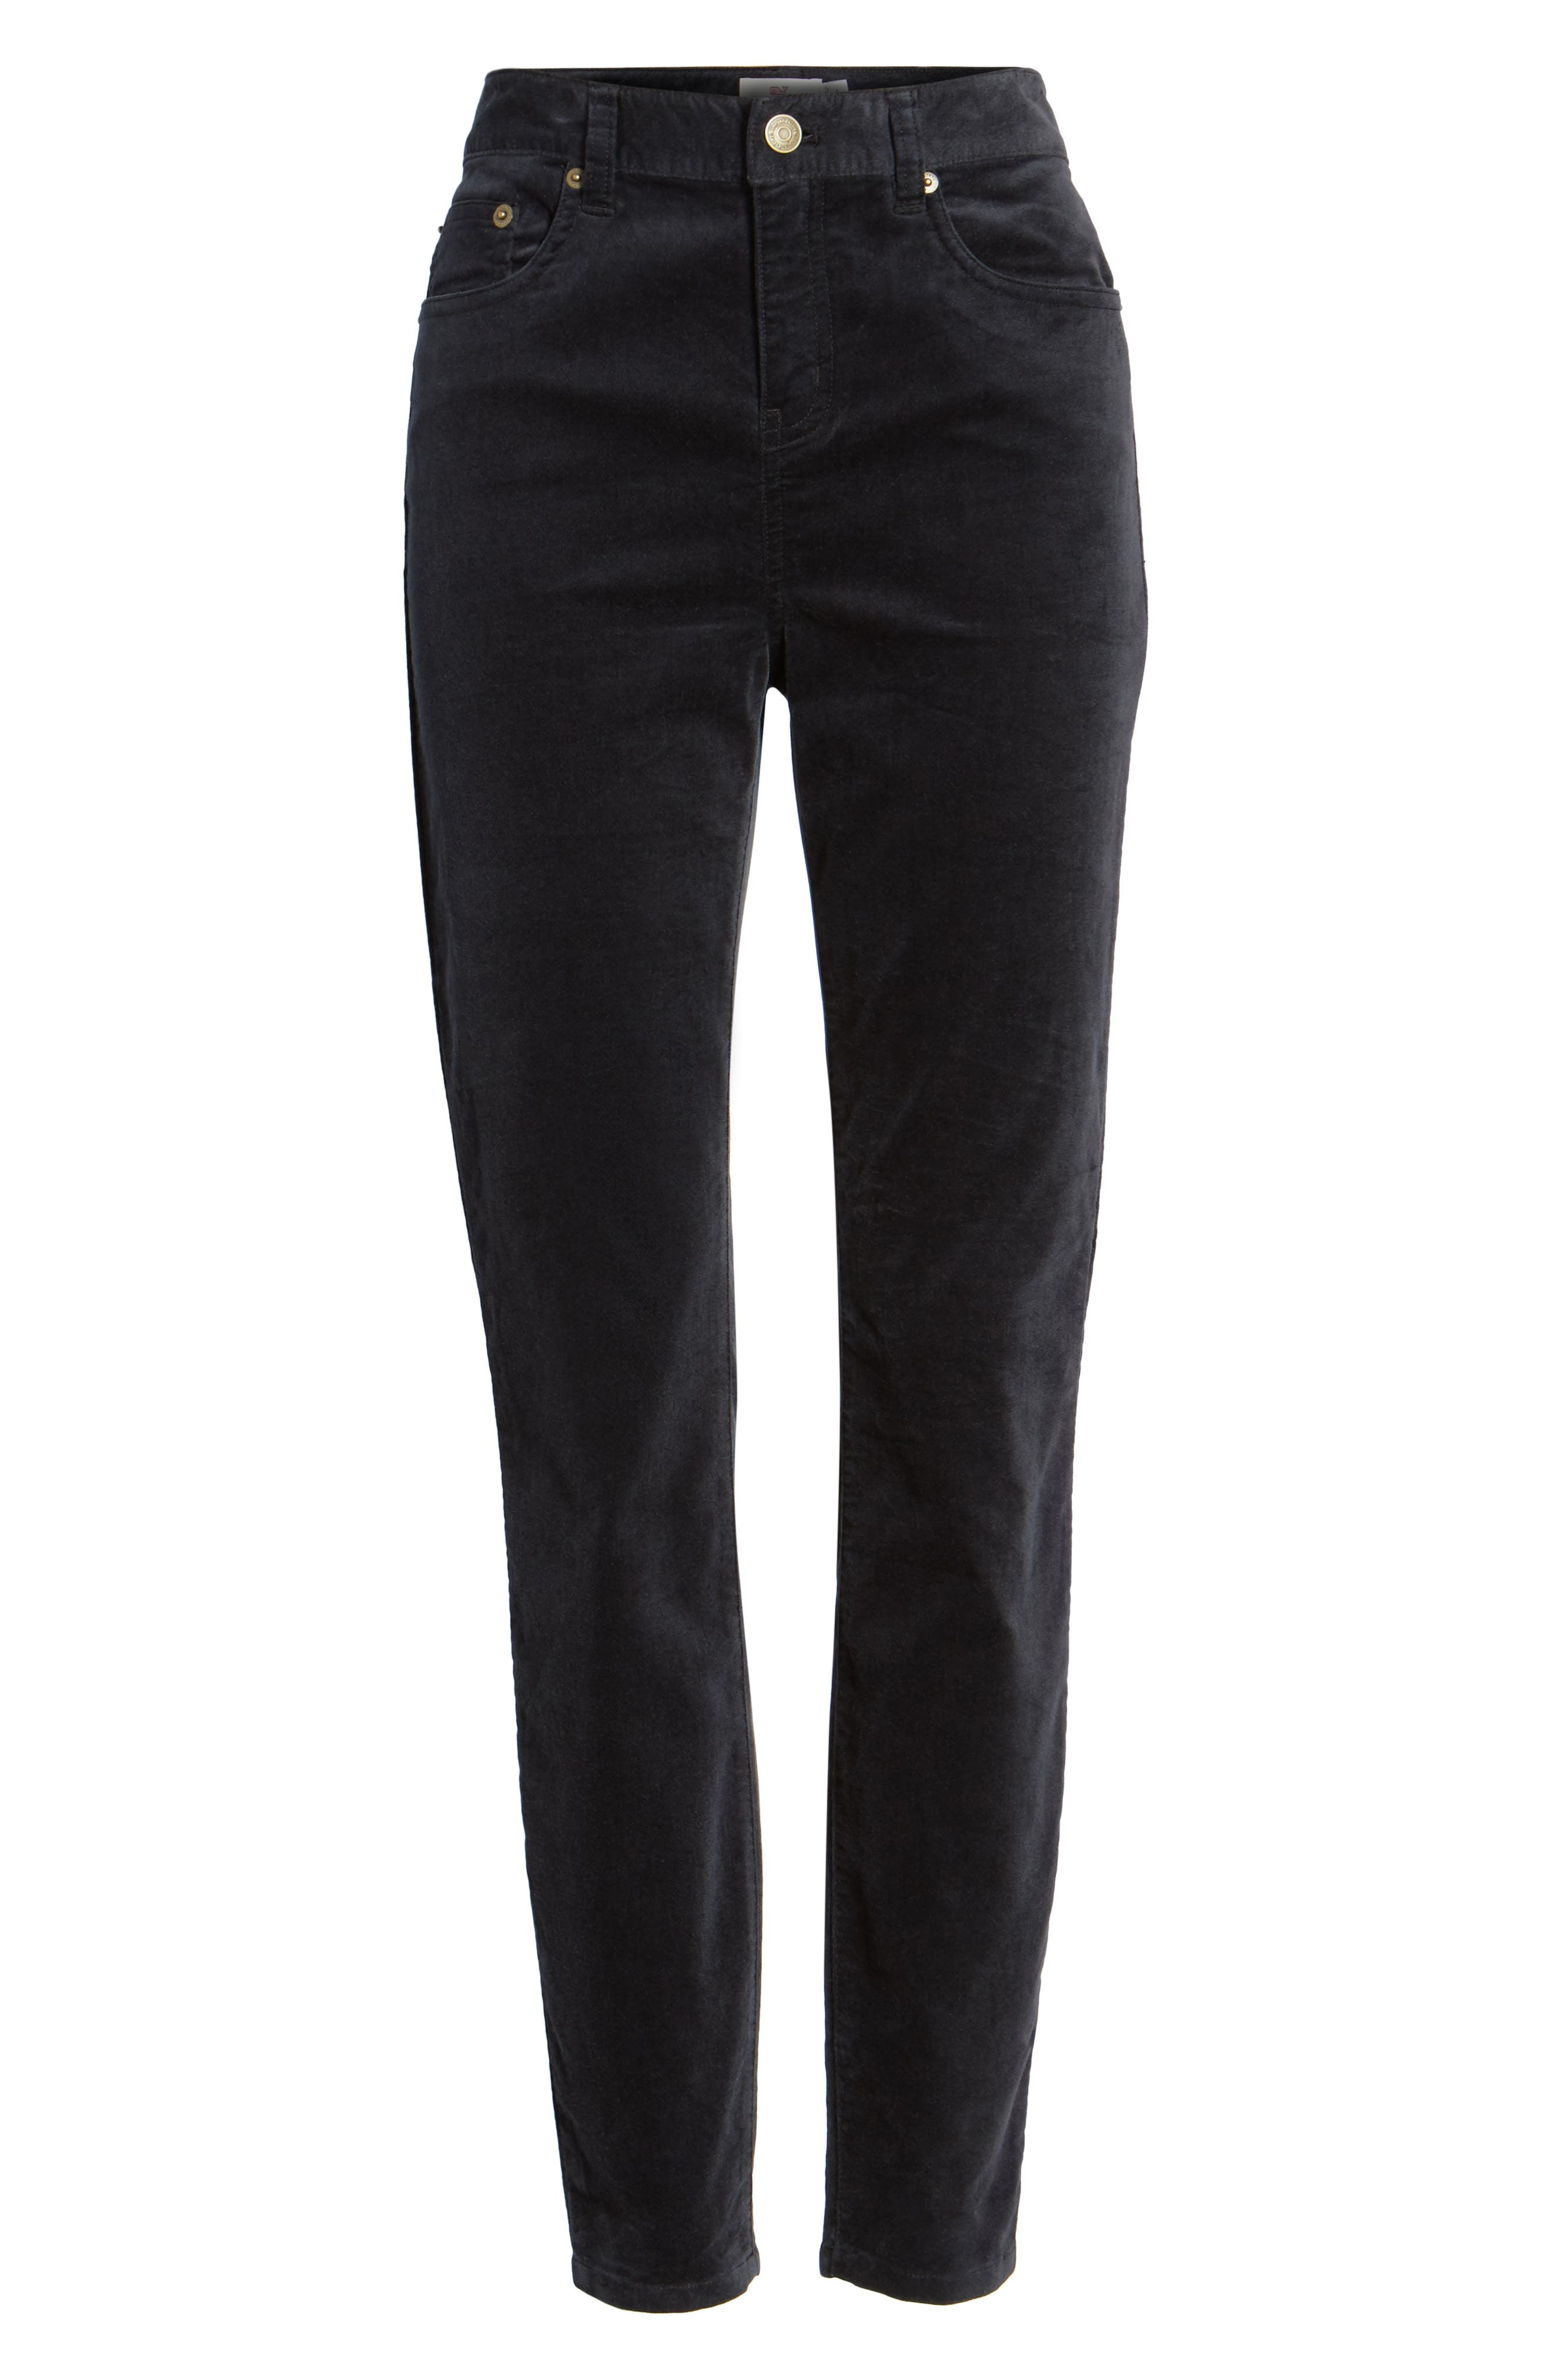 Velvet Skinny Jeans,                             Alternate thumbnail 6, color,                             Jet Black